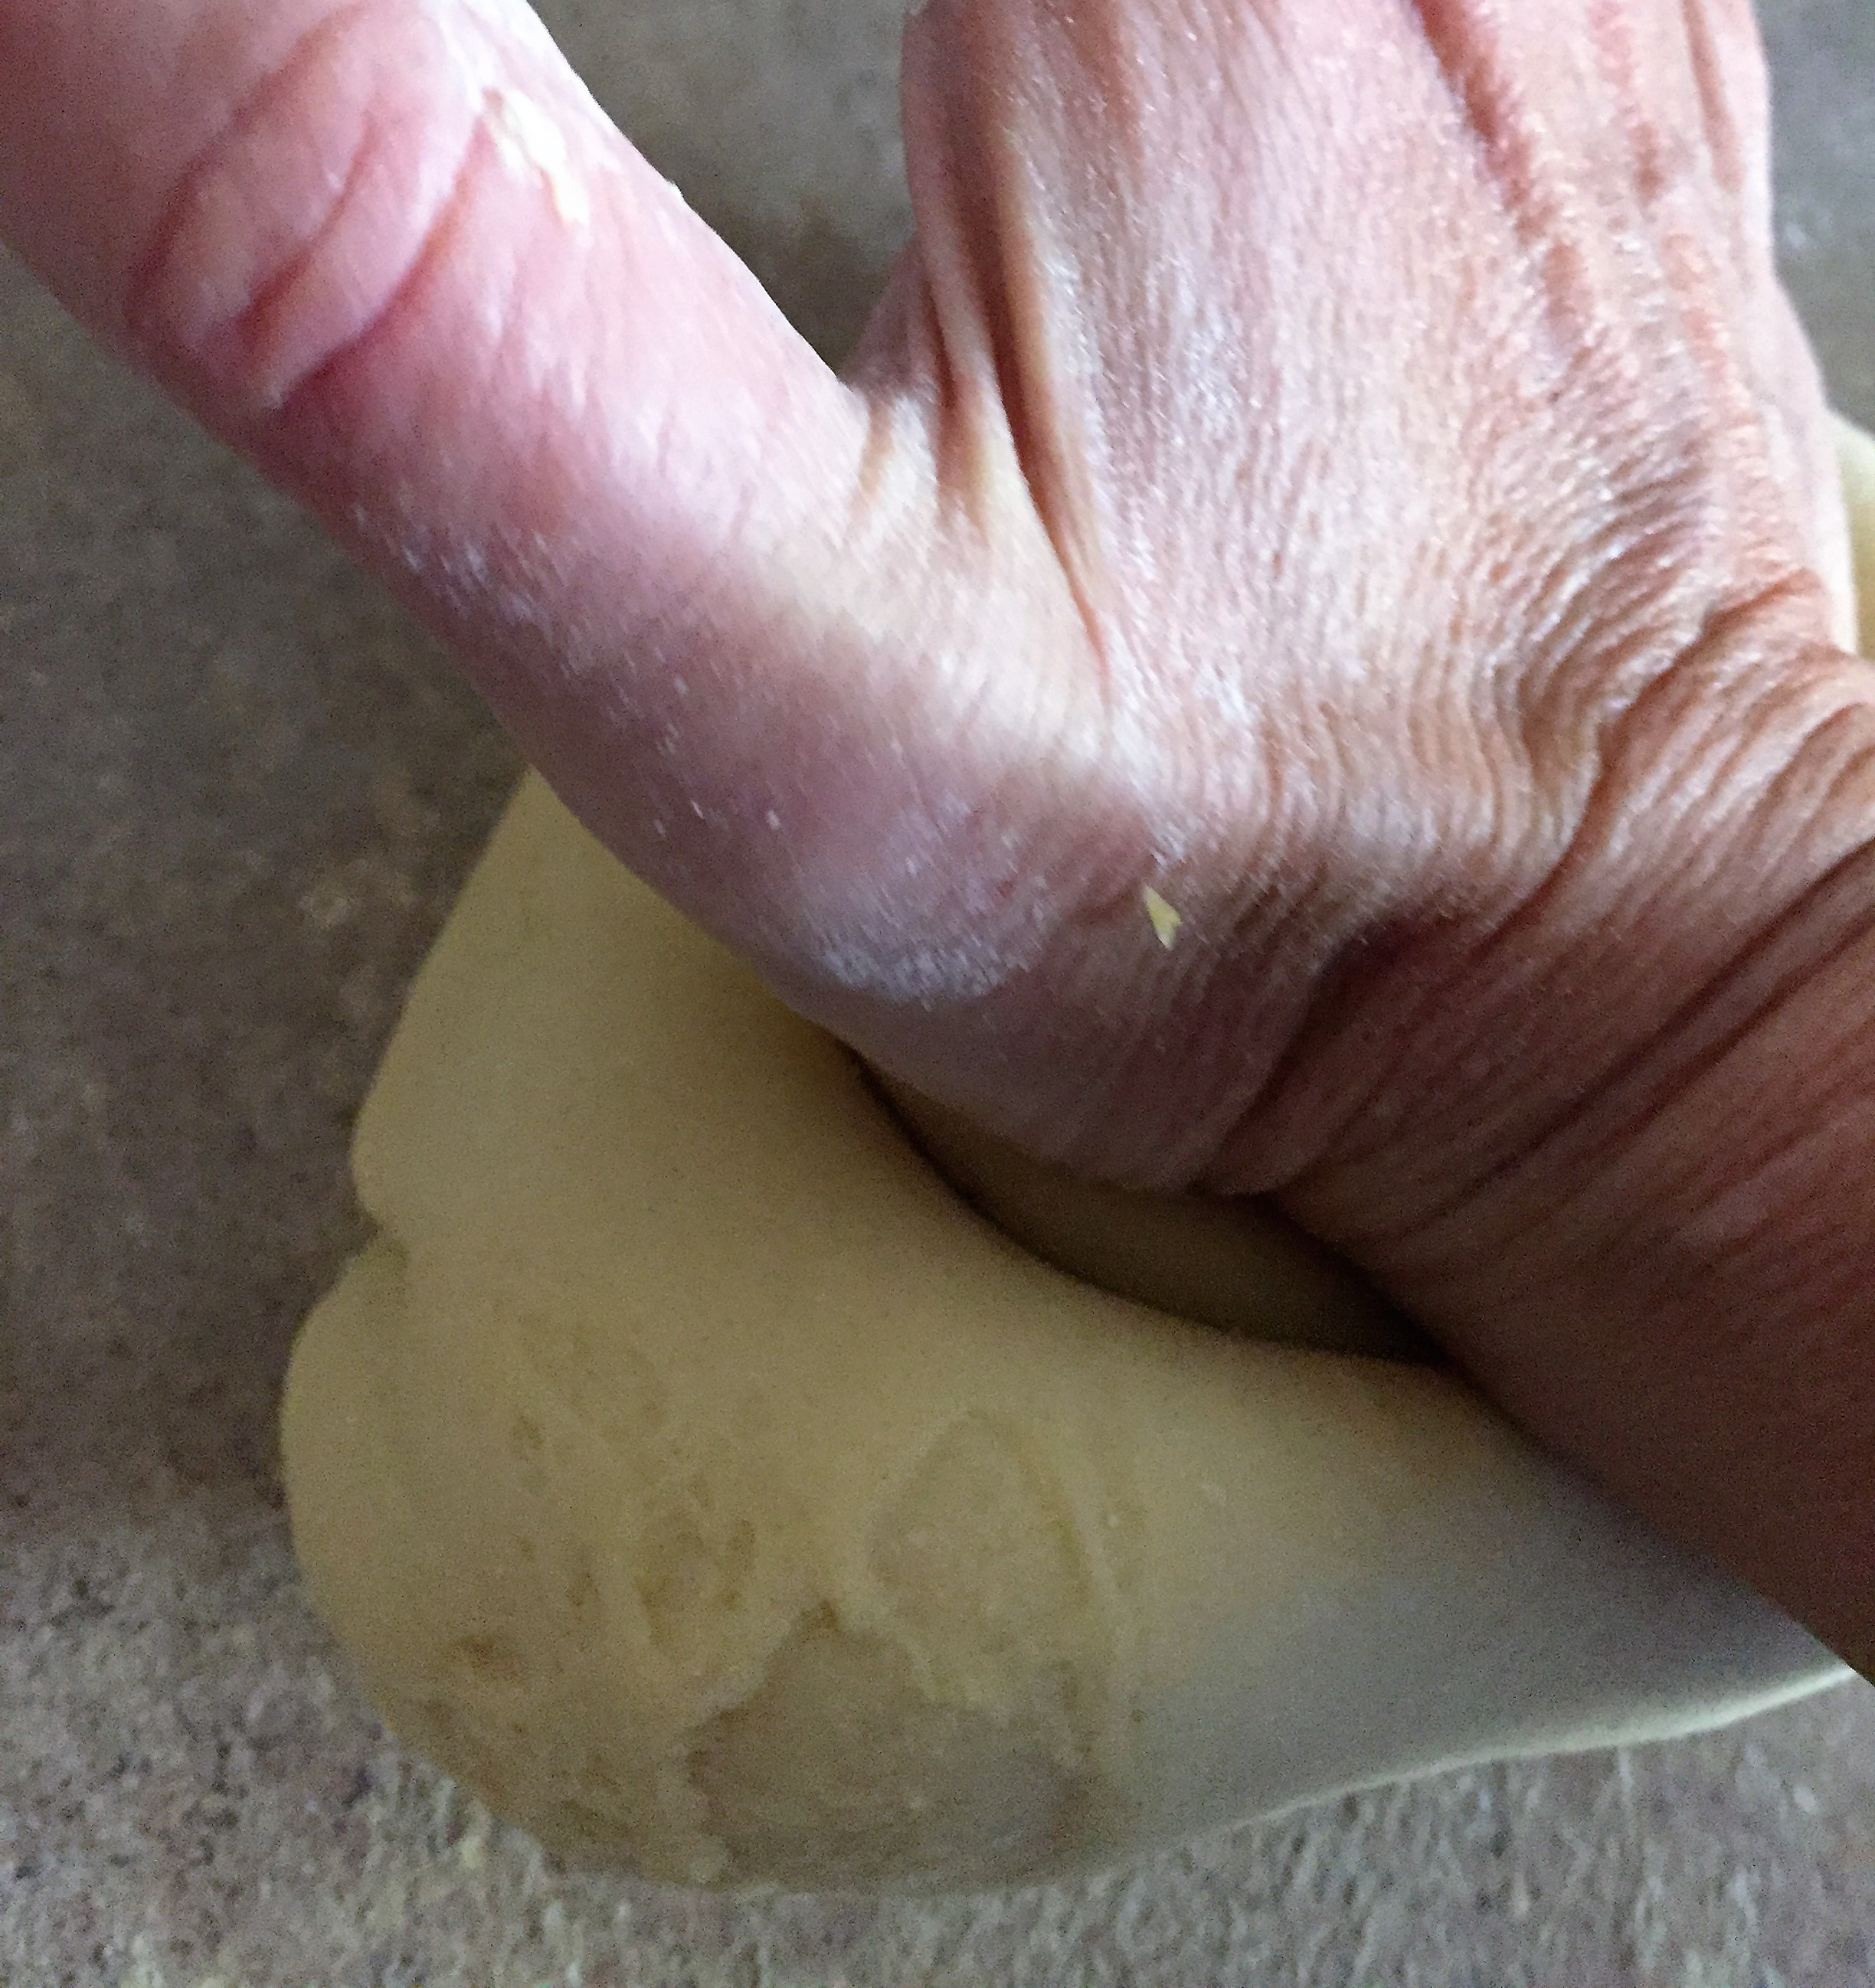 You can see here, I am pushing down and away from myself with the heel of my hand. Each time, then folding the dough over itself and re-kneading.